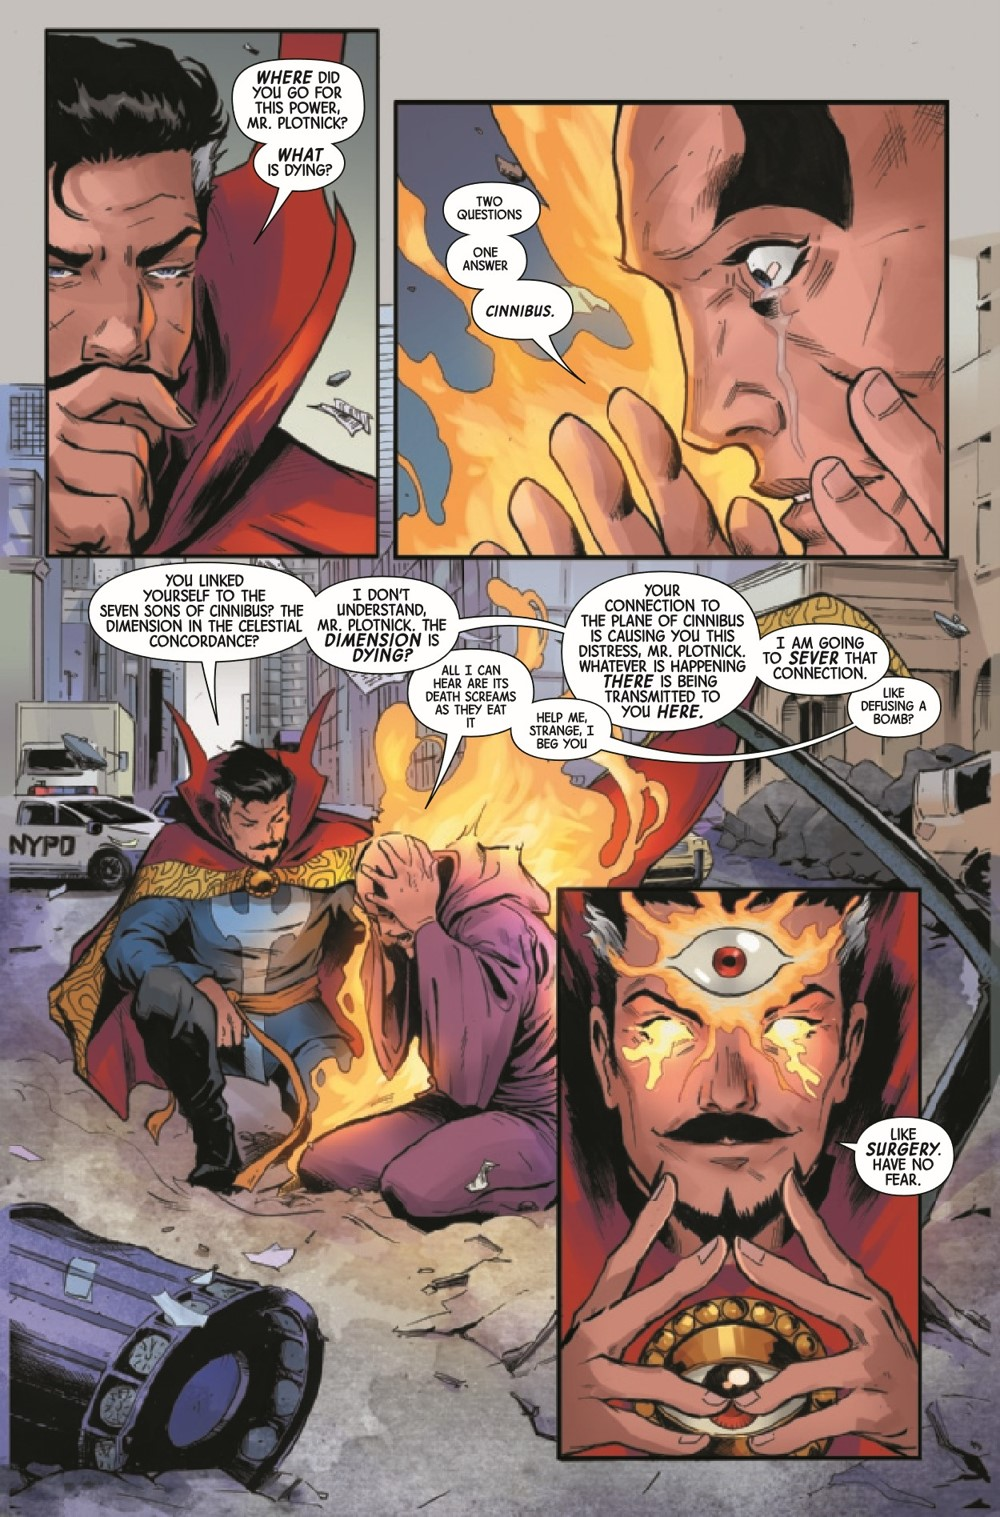 DRSDEATH2021001_Preview-5 ComicList Previews: DEATH OF DOCTOR STRANGE #1 (OF 5)